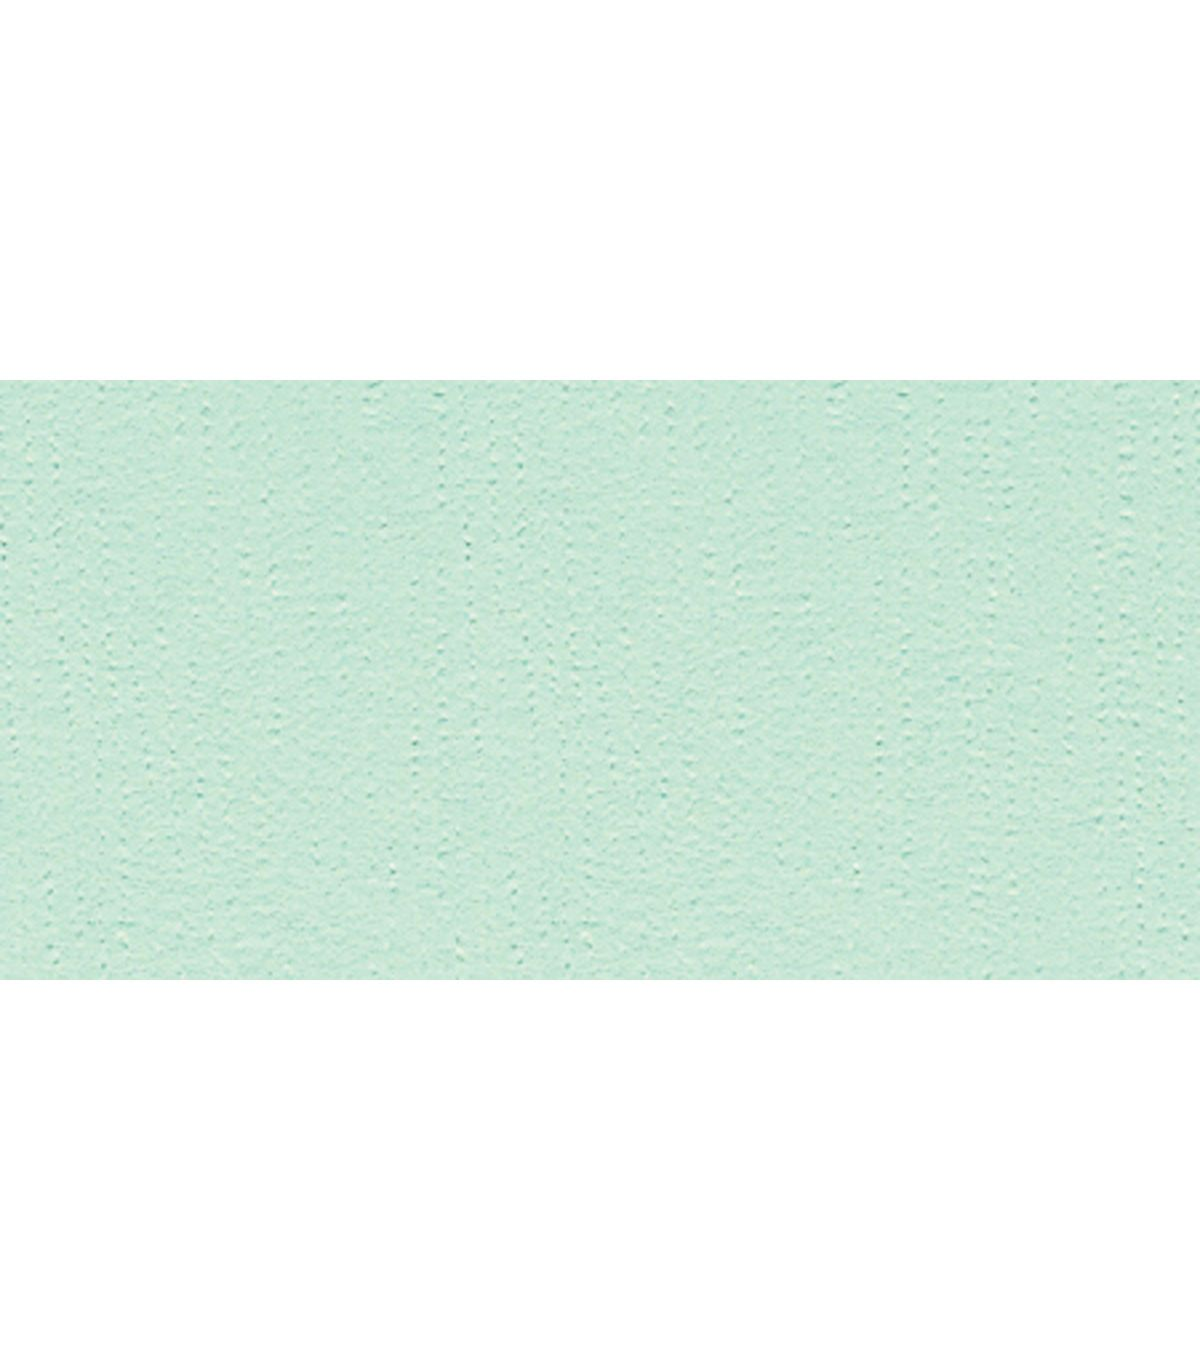 Bazzill Cardstock 8.5X11-Turquoise Mist//Grass Cloth 25 per pack